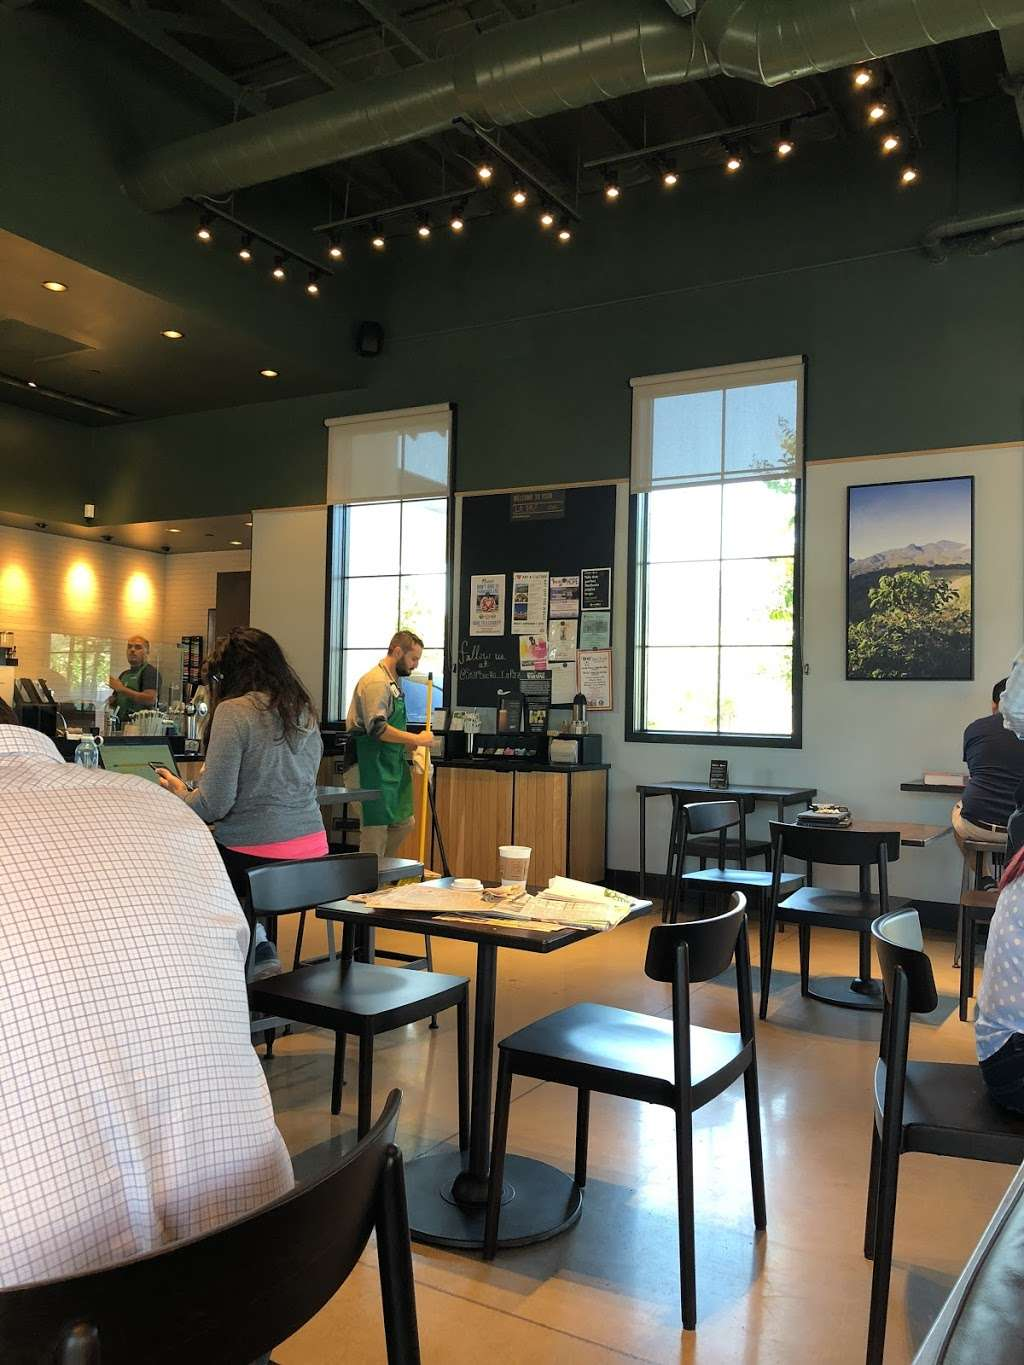 Starbucks - cafe  | Photo 7 of 10 | Address: 30571 Highway 79 S, A, Temecula, CA 92592, USA | Phone: (951) 506-2785